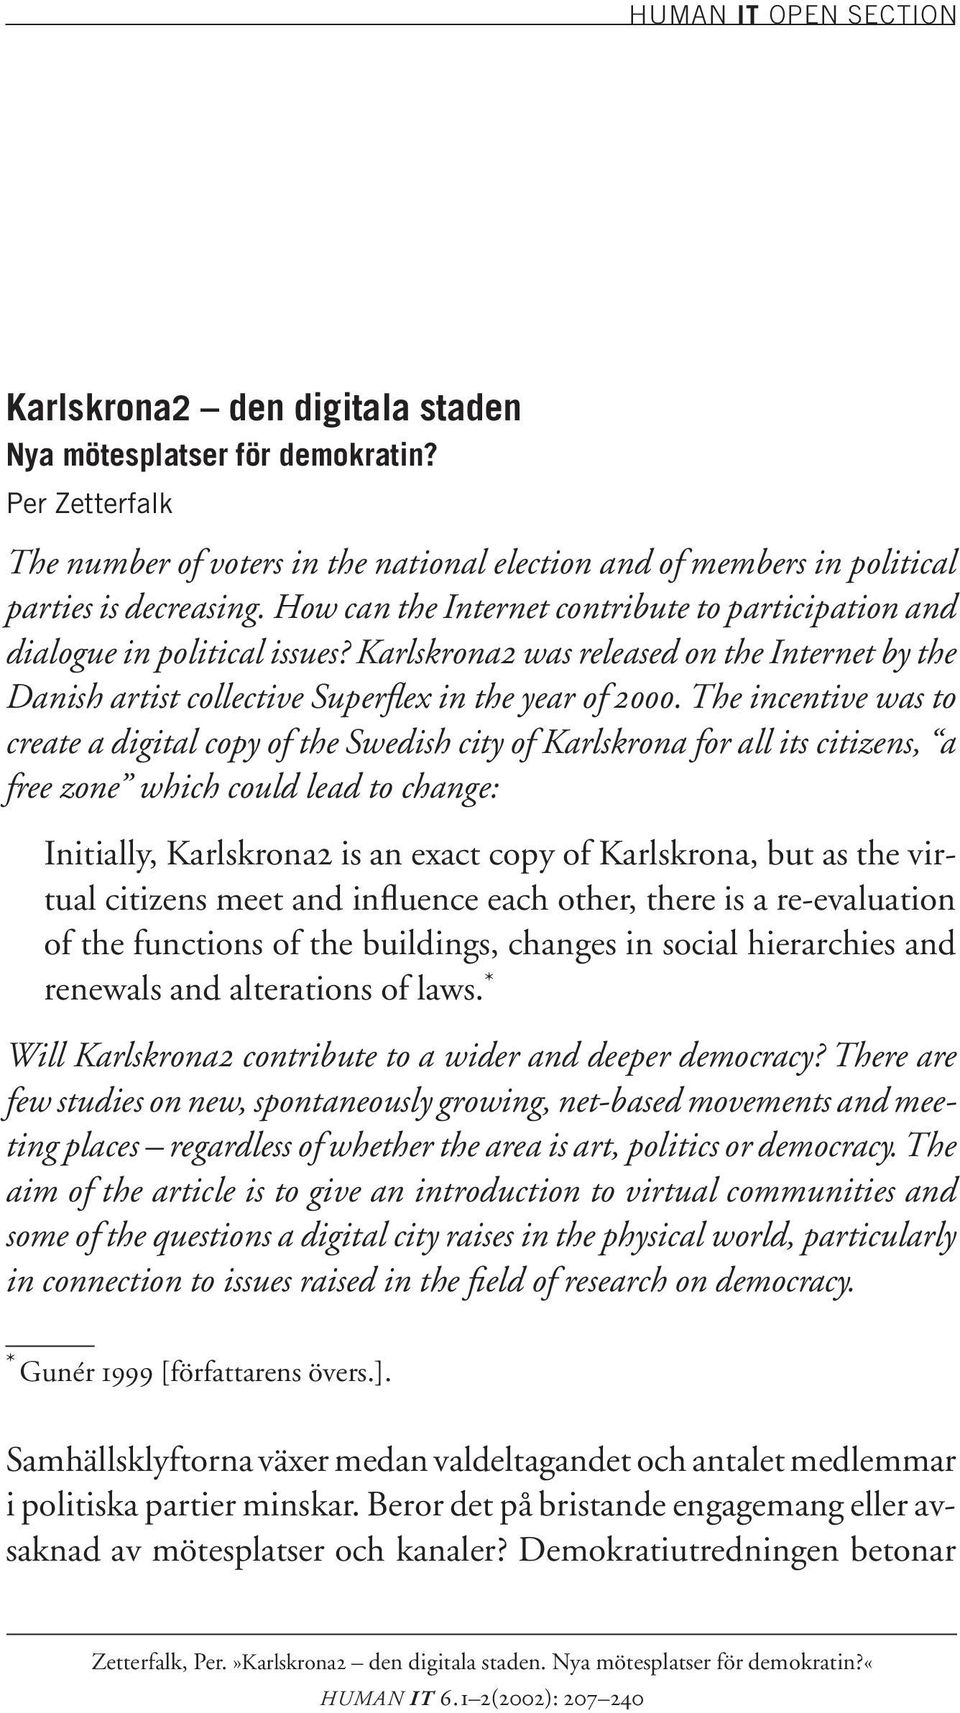 The incentive was to create a digital copy of the Swedish city of Karlskrona for all its citizens, a free zone which could lead to change: Initially, Karlskrona2 is an exact copy of Karlskrona, but